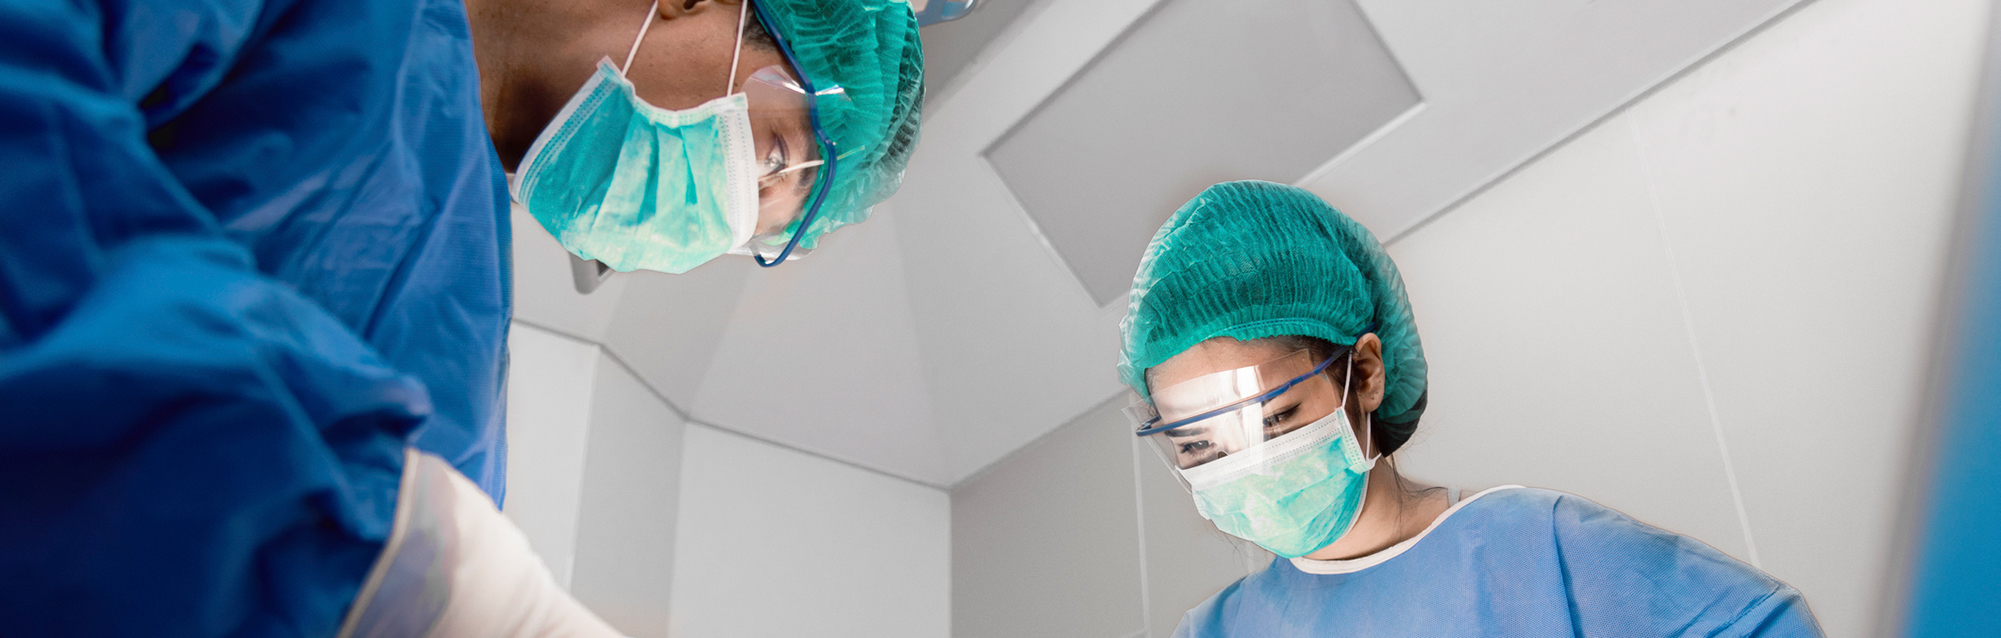 Close-up of surgeons wearing masks while performing a procedure in an operating room